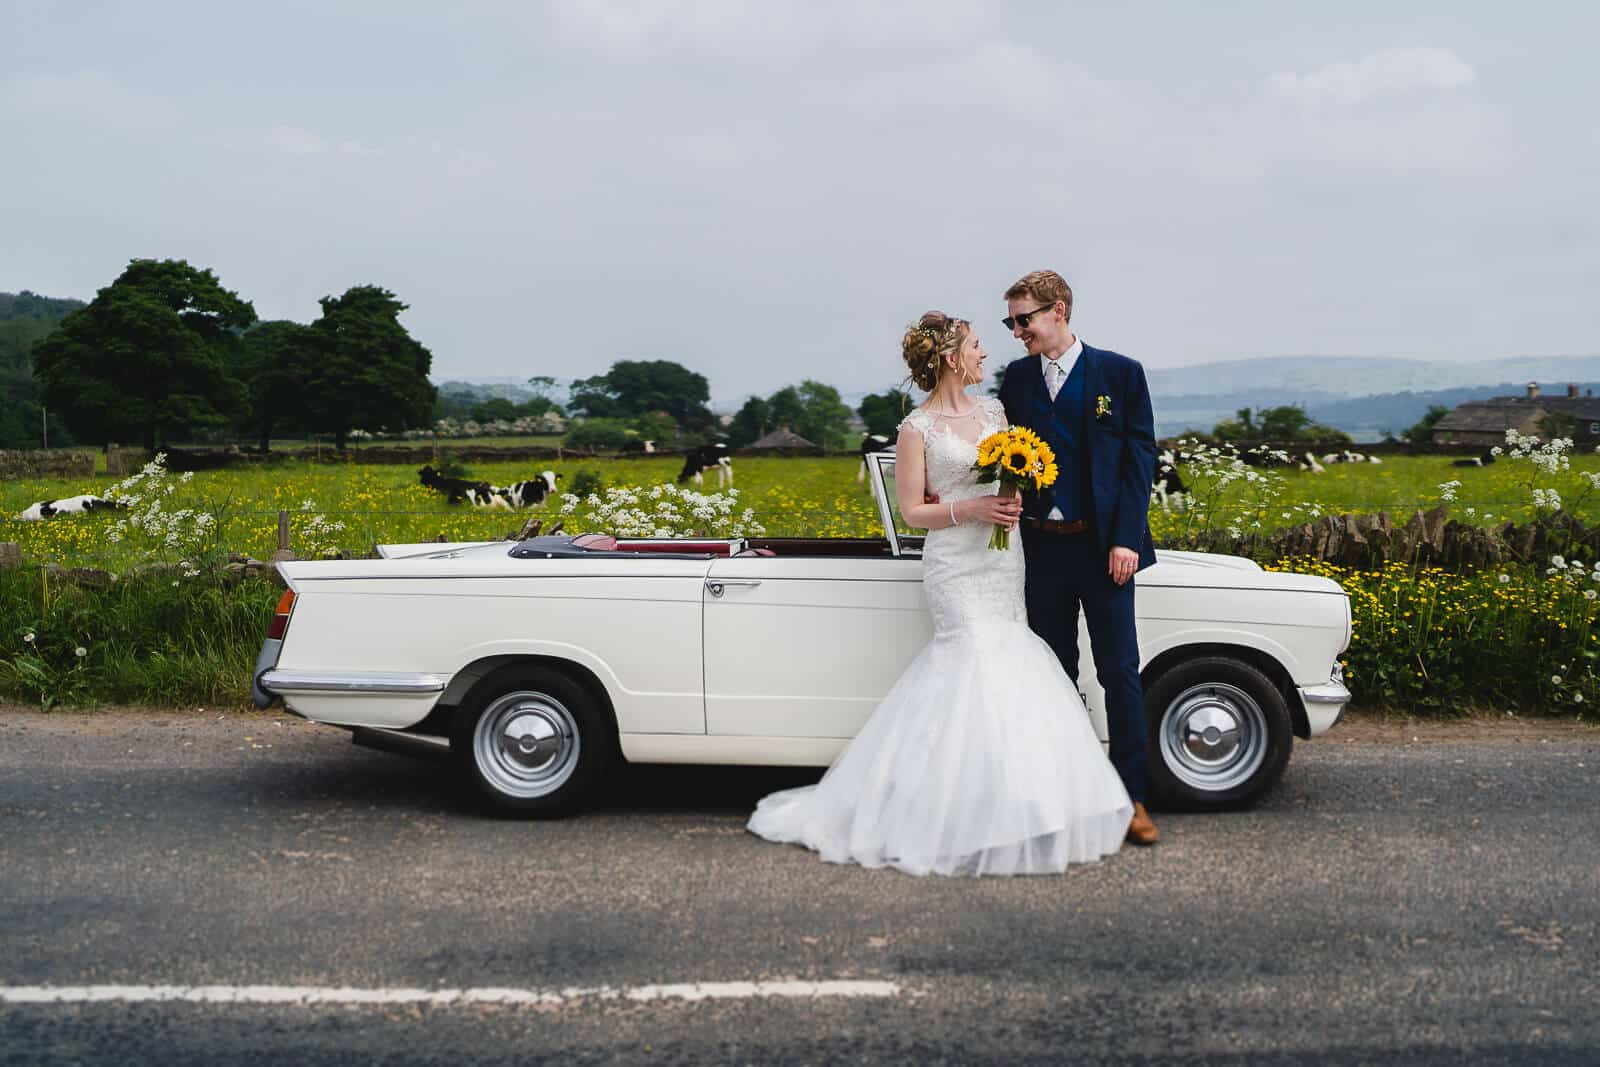 Bride and Groom In countryside with car